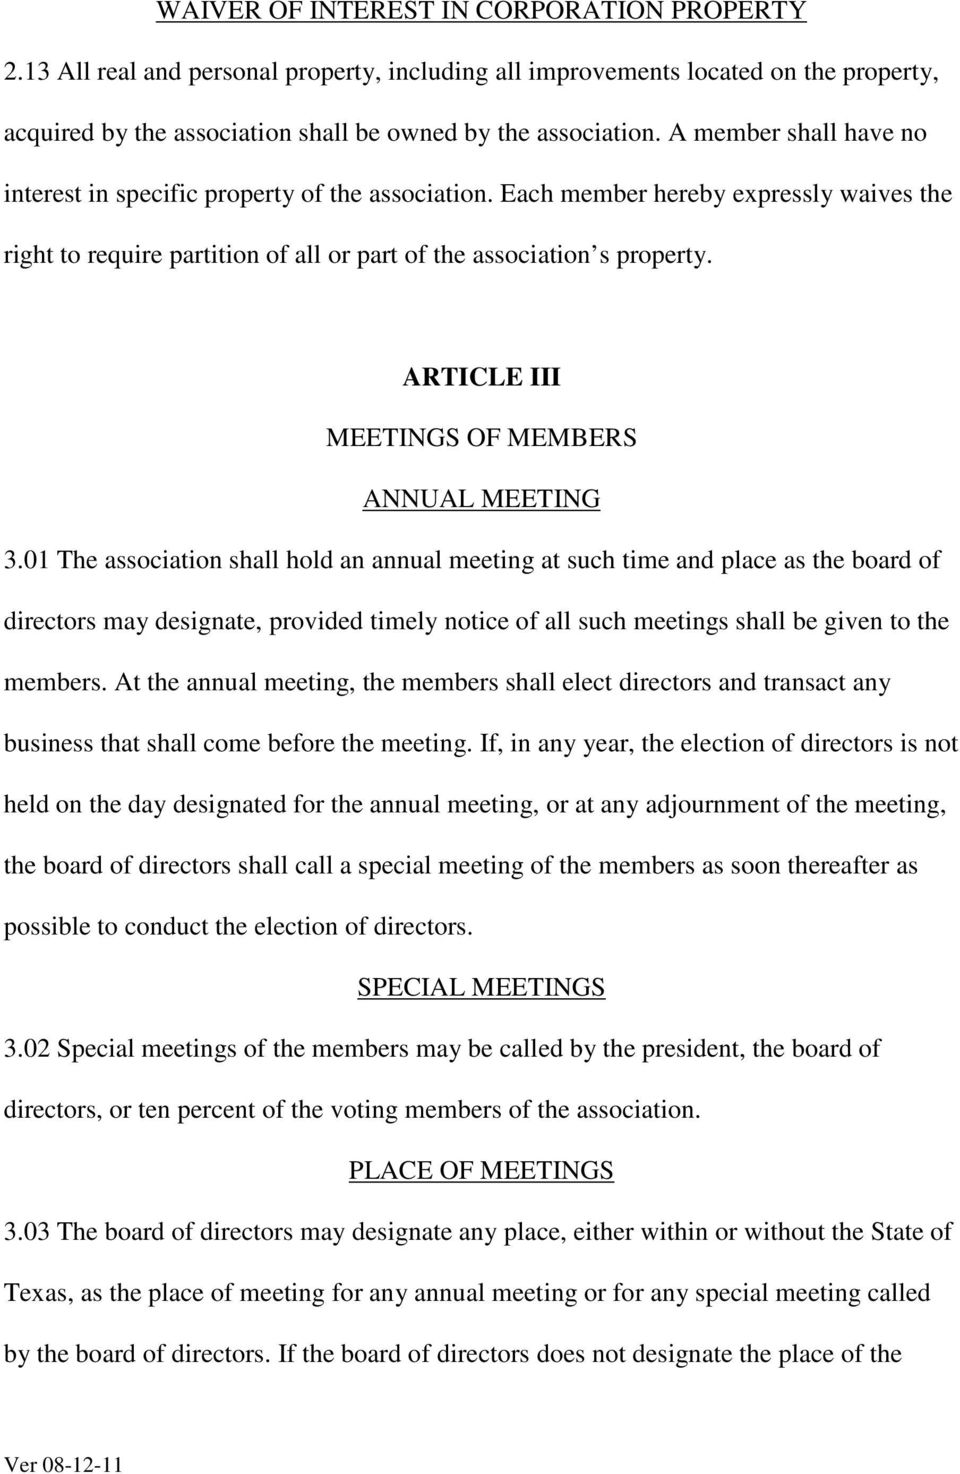 ARTICLE III MEETINGS OF MEMBERS ANNUAL MEETING 3.